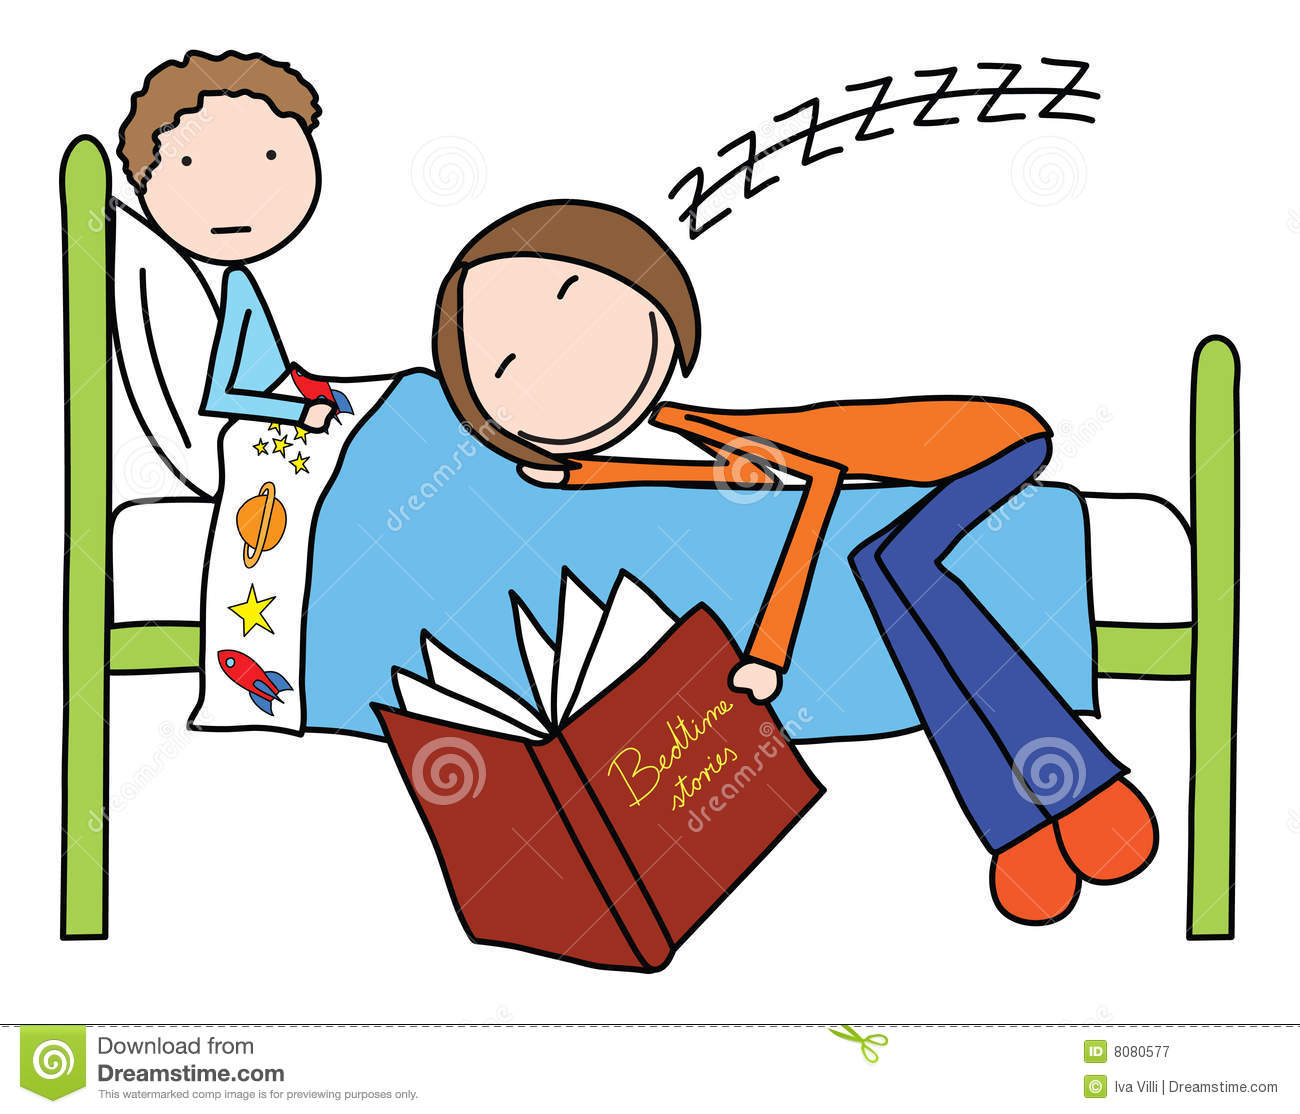 Bed time pajama clipart clipart suggest for Bed stories online